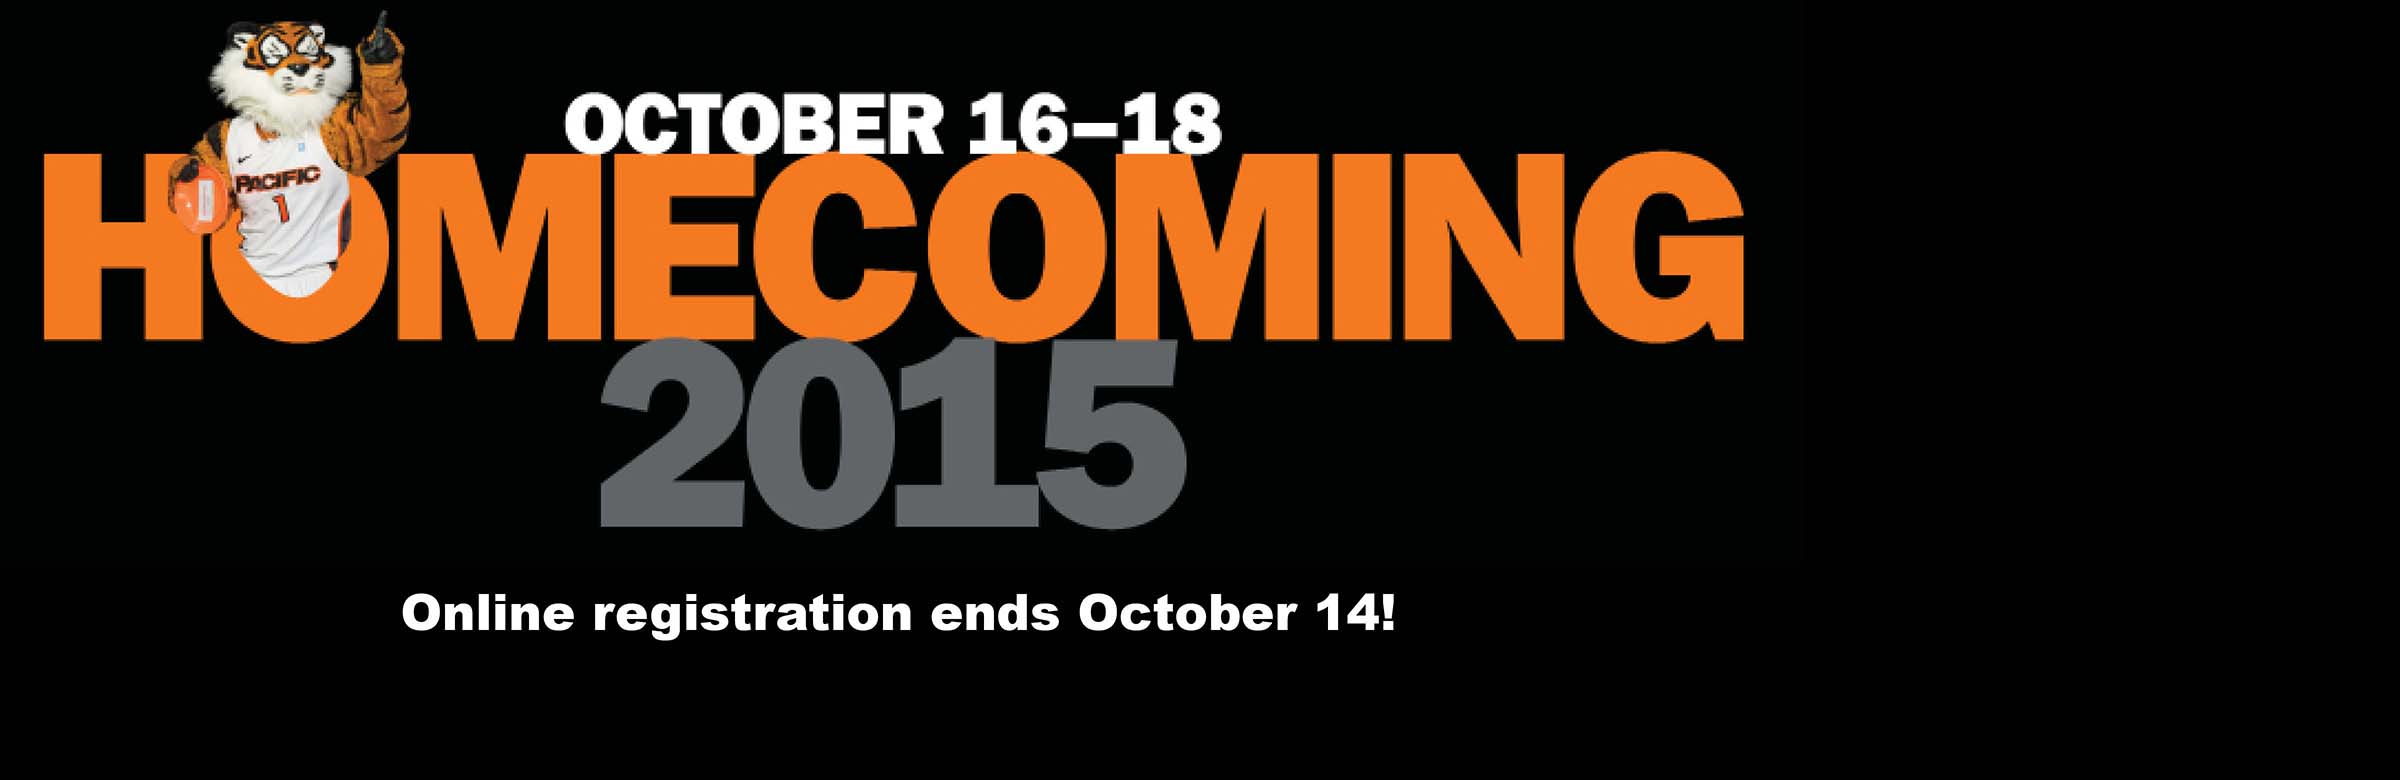 Register NOW for Homecoming 2015